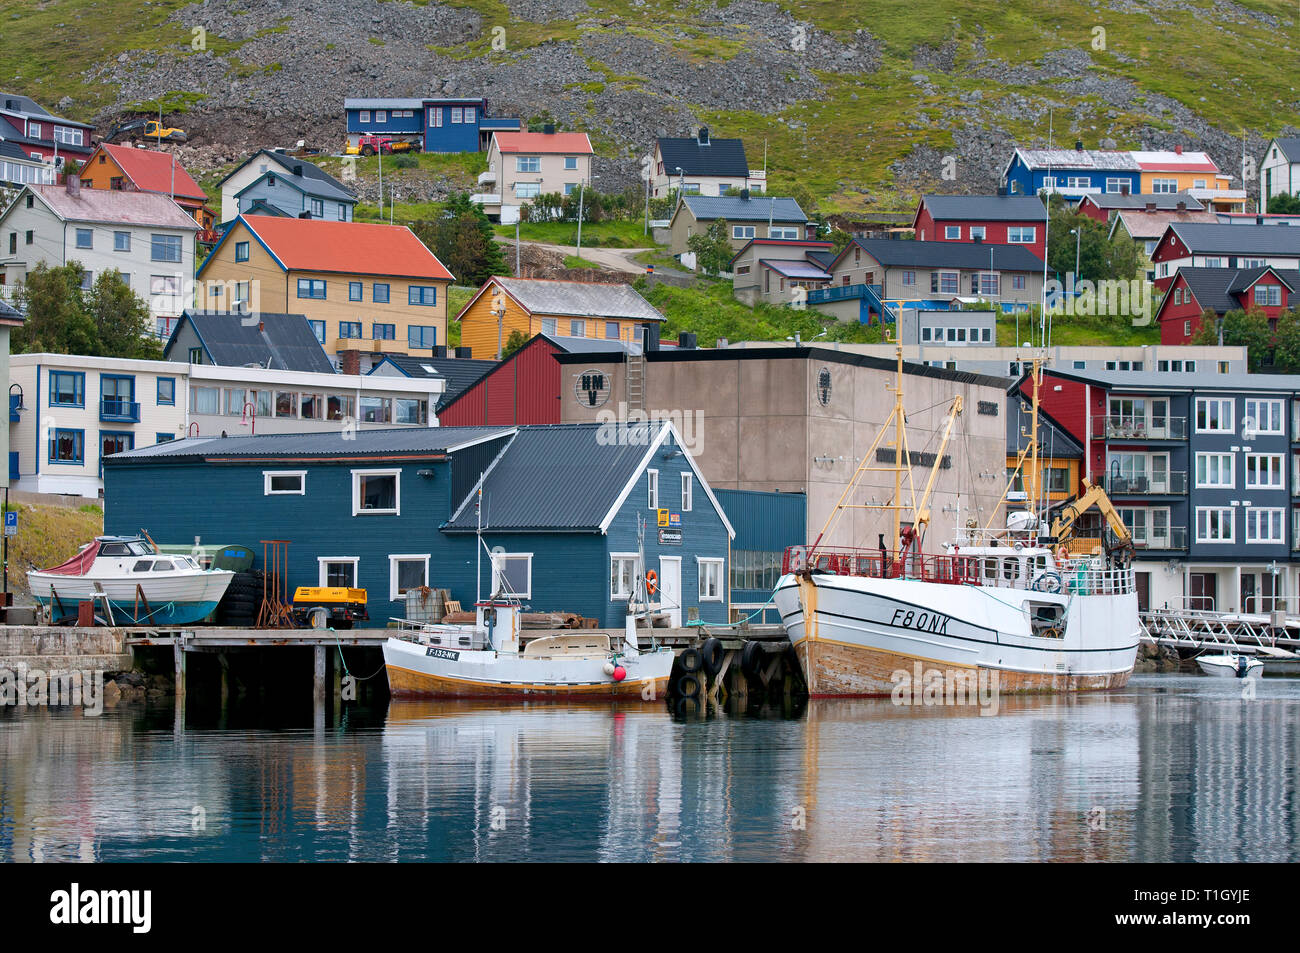 Boats and coloured buildings in Honningsvag, Magerøya Island, County Finnmark, Norway - Stock Image